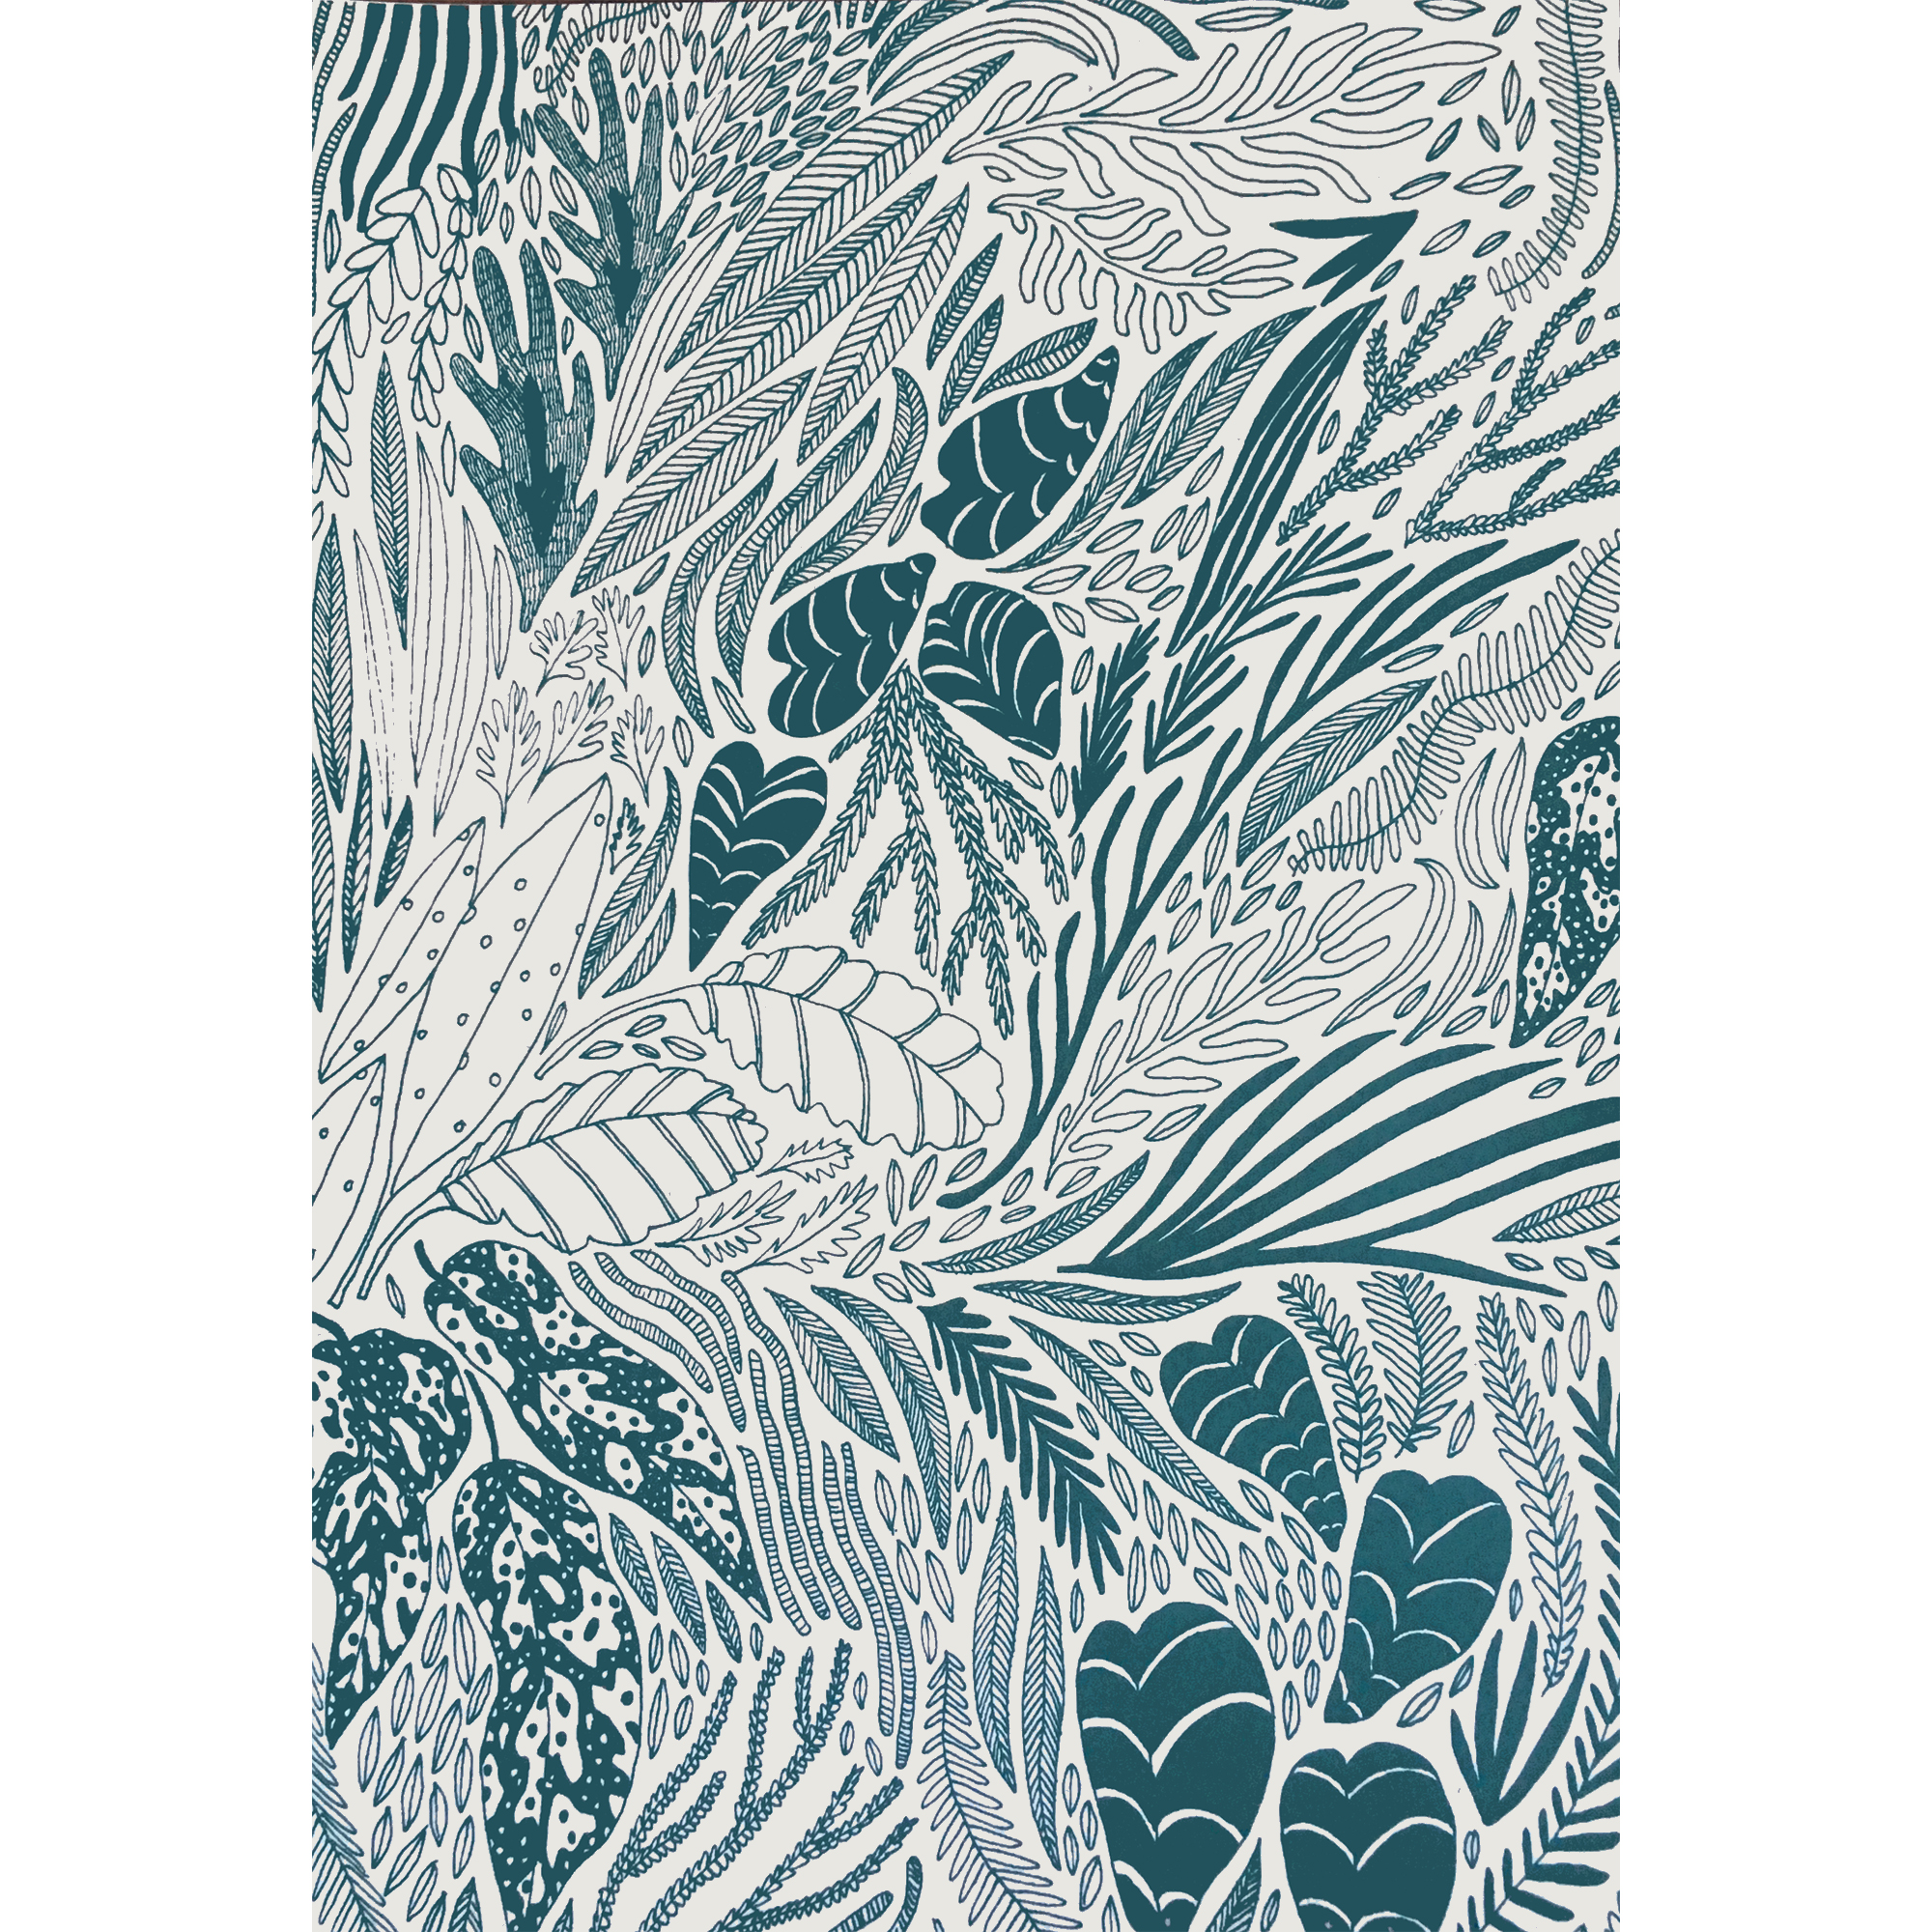 Caitlin Foster x The Sill - Three silkscreened botanical prints for sale at The Sill